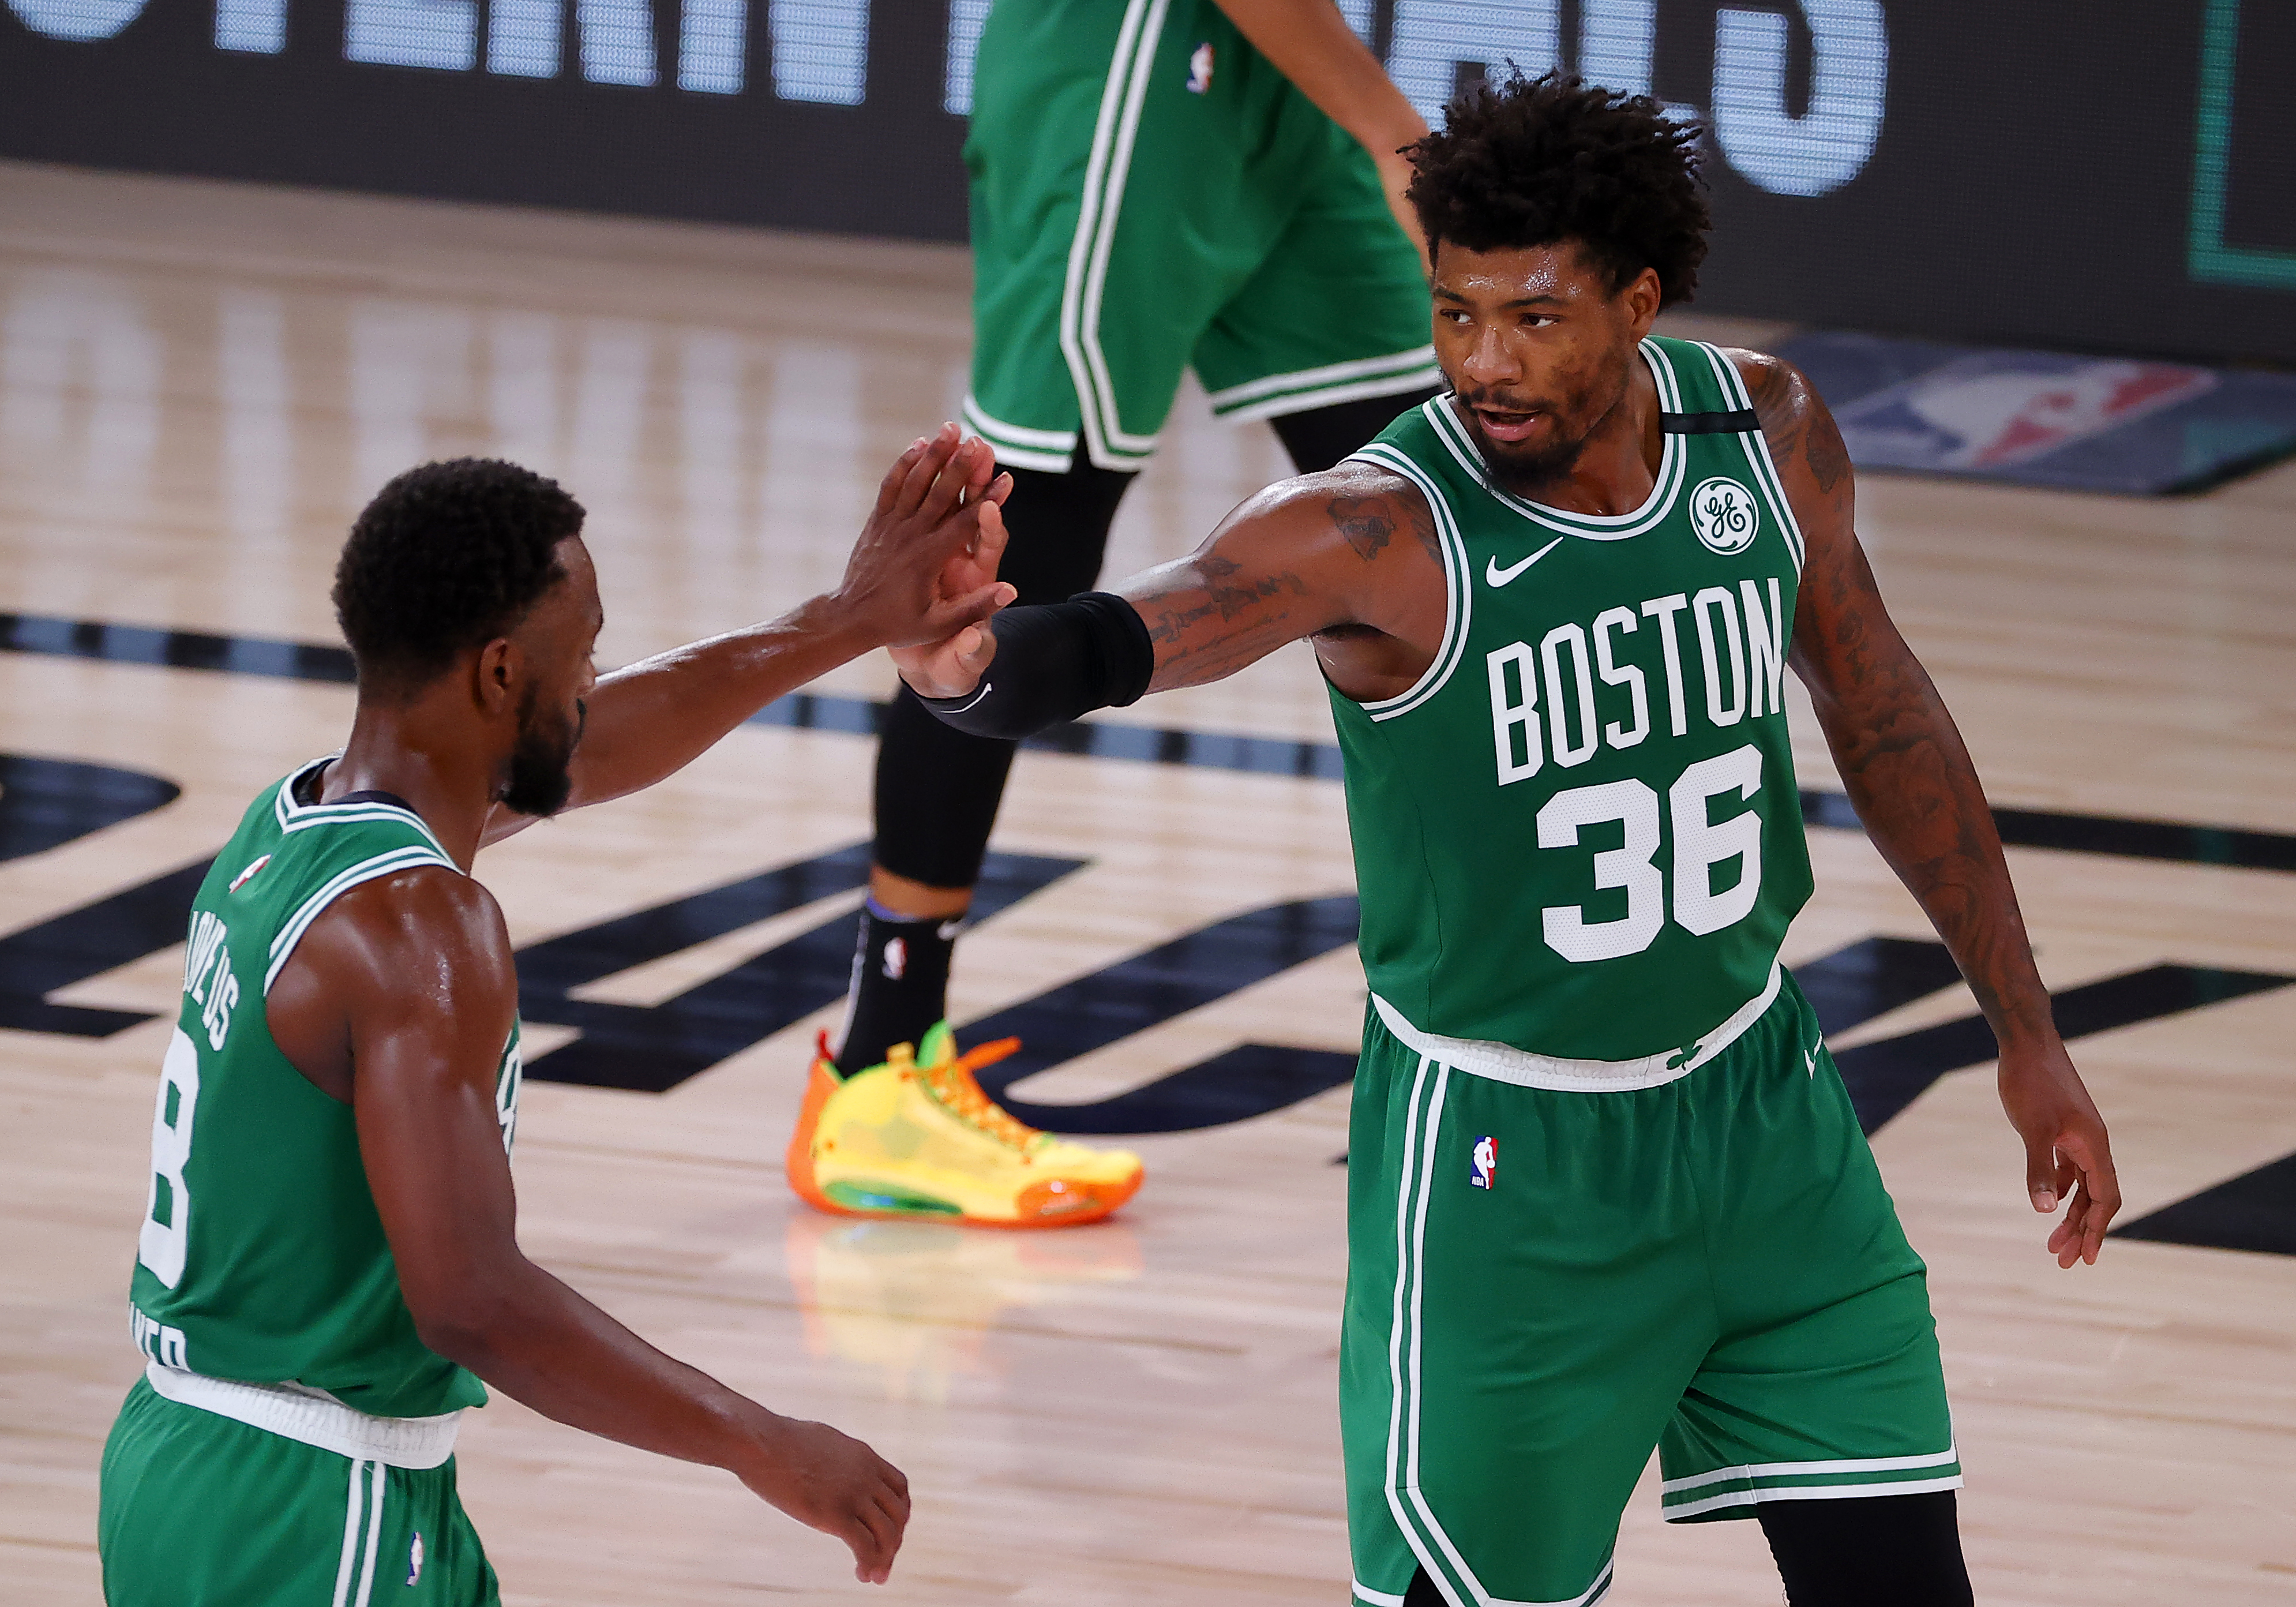 Here S Everything The Boston Celtics Said After Winning Game 3 Vs The Miami Heat Masslive Com